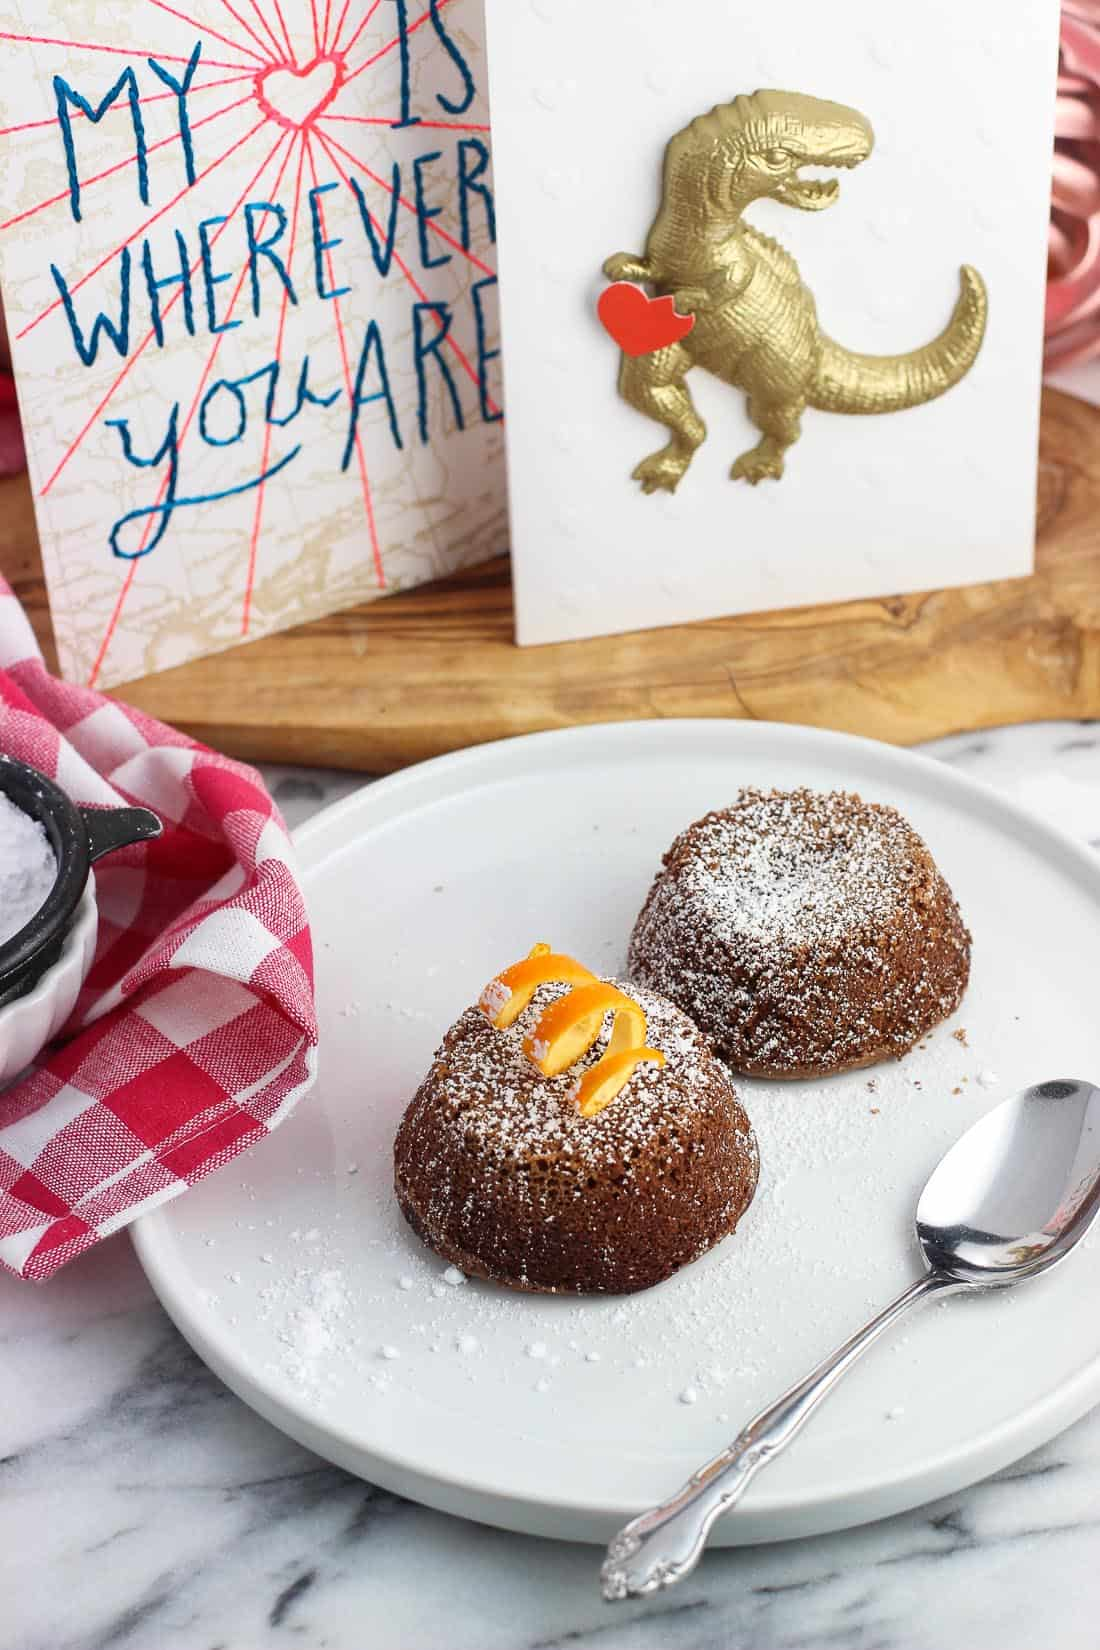 Mini Chocolate Orange Lava Cakes make a perfect date night dessert! This smaller-batch recipe makes four mini lava cakes using a muffin tin - perfect for individual servings or for sharing!